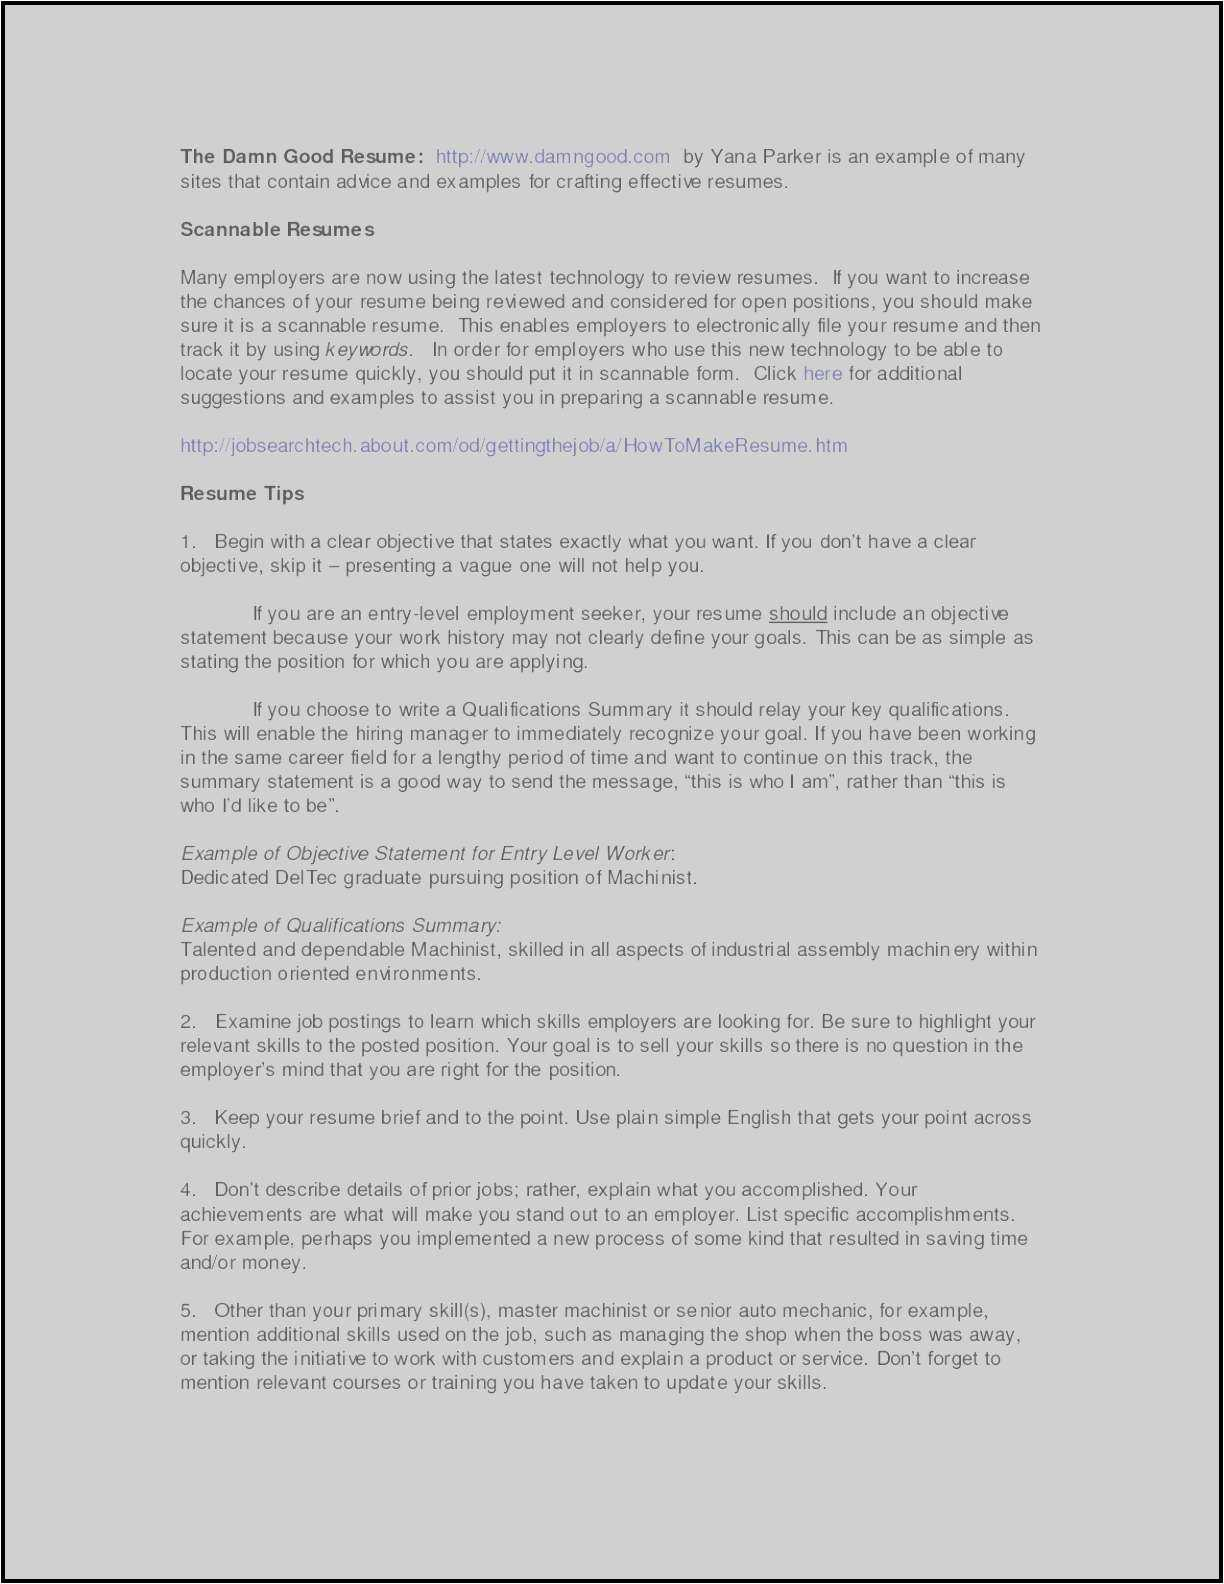 Resume Templates for Manufacturing Jobs - 25 Free Profile Resume Samples Picture